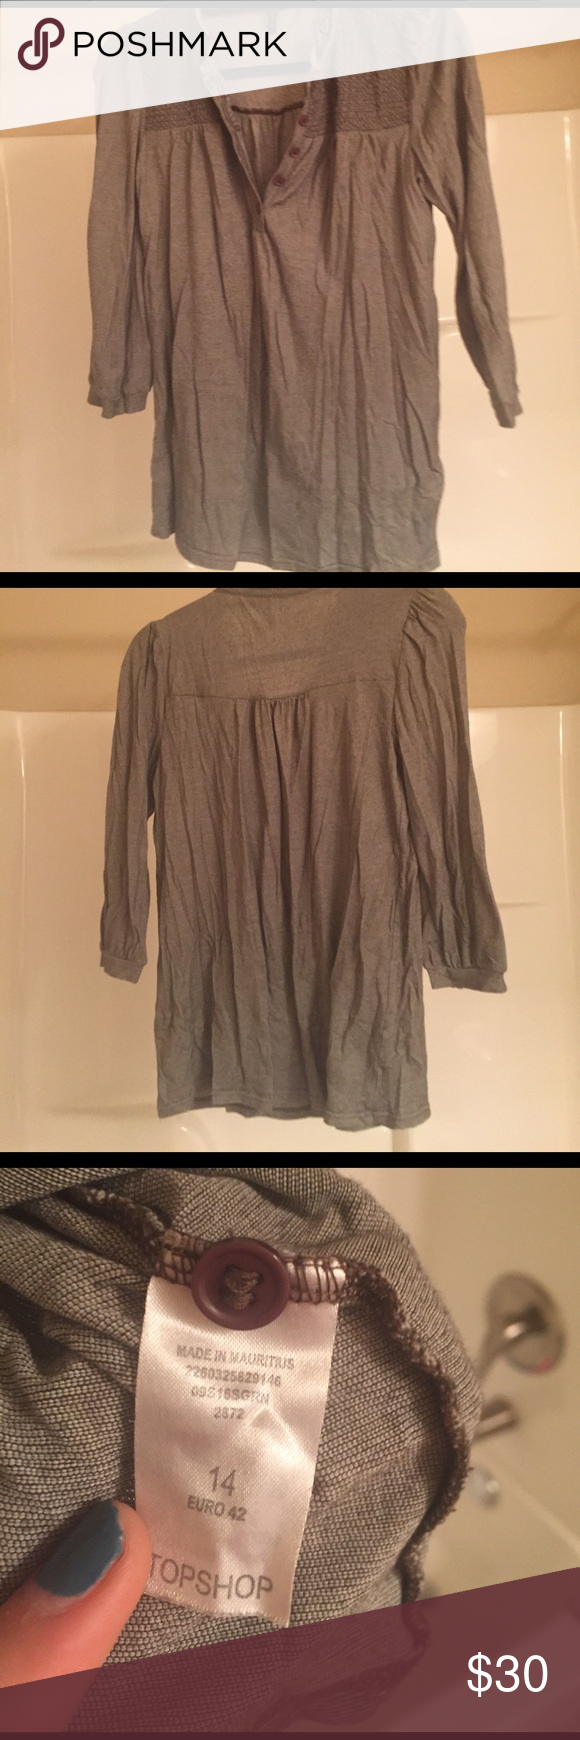 Smocked topshop top Very narrow black and grey stripe, super soft, EUC still has spare button. UK size 14 but looks beautiful on smaller sizes as well (I'm a UK 10) Topshop Tops Blouses